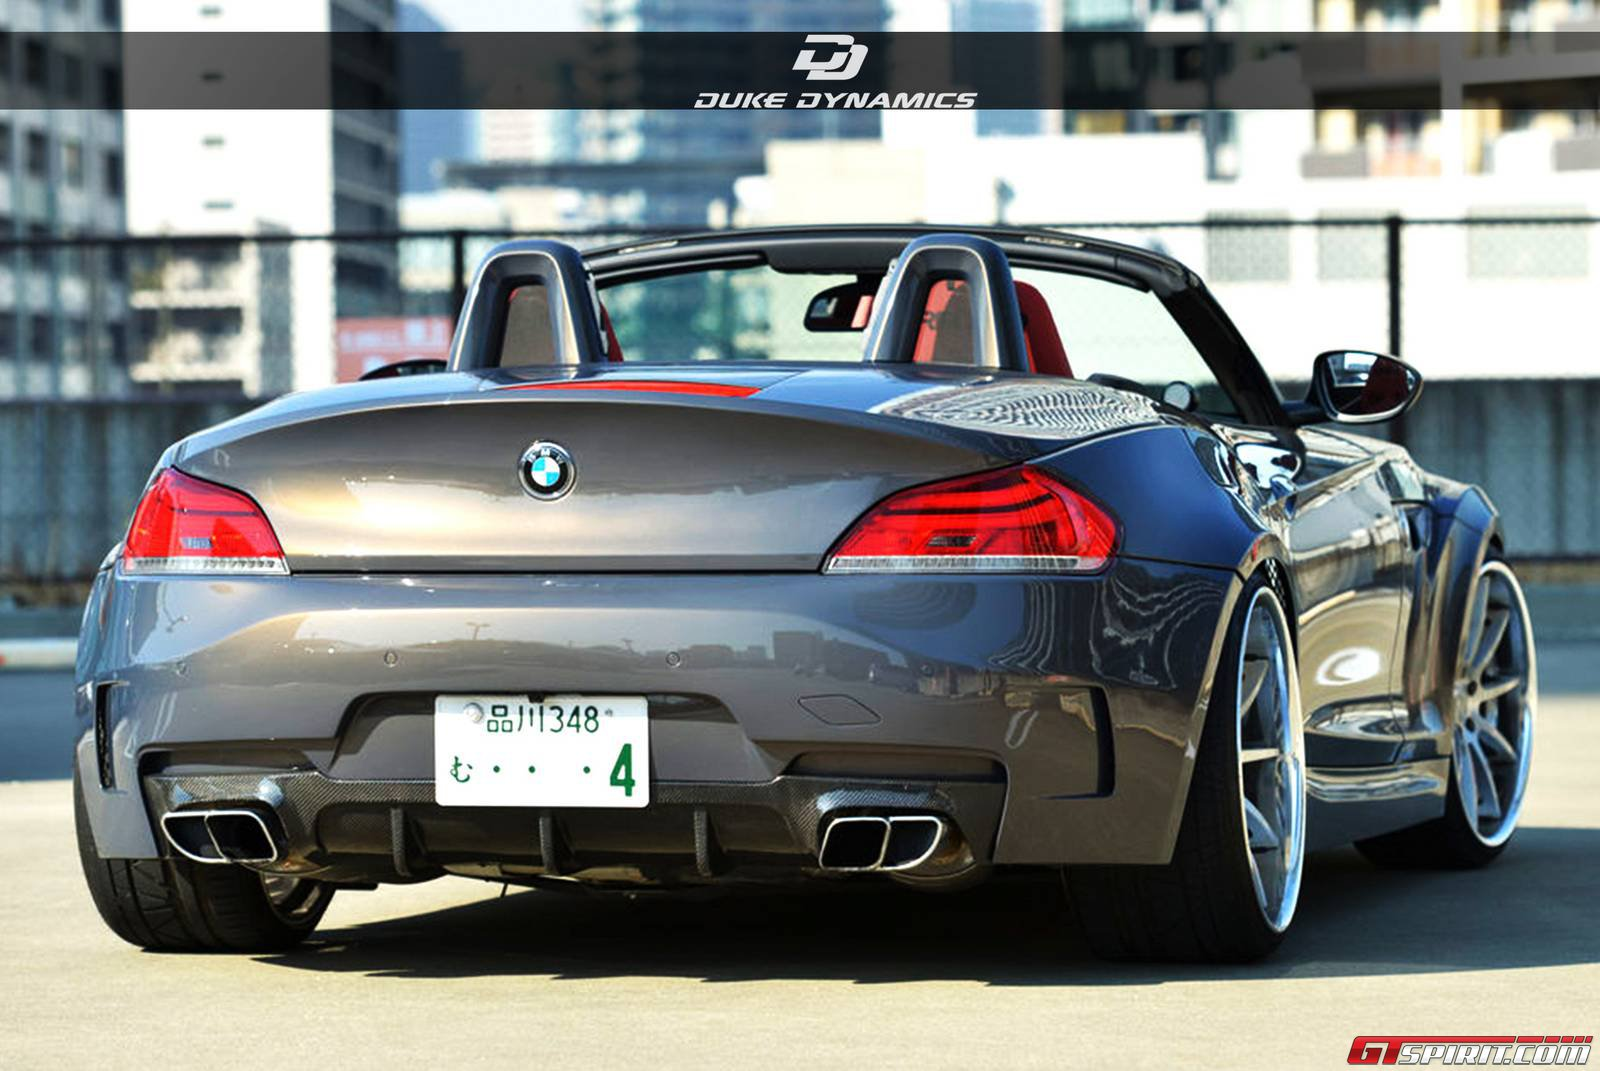 Official Bmw Z4 Widebody By Duke Dynamics Gtspirit